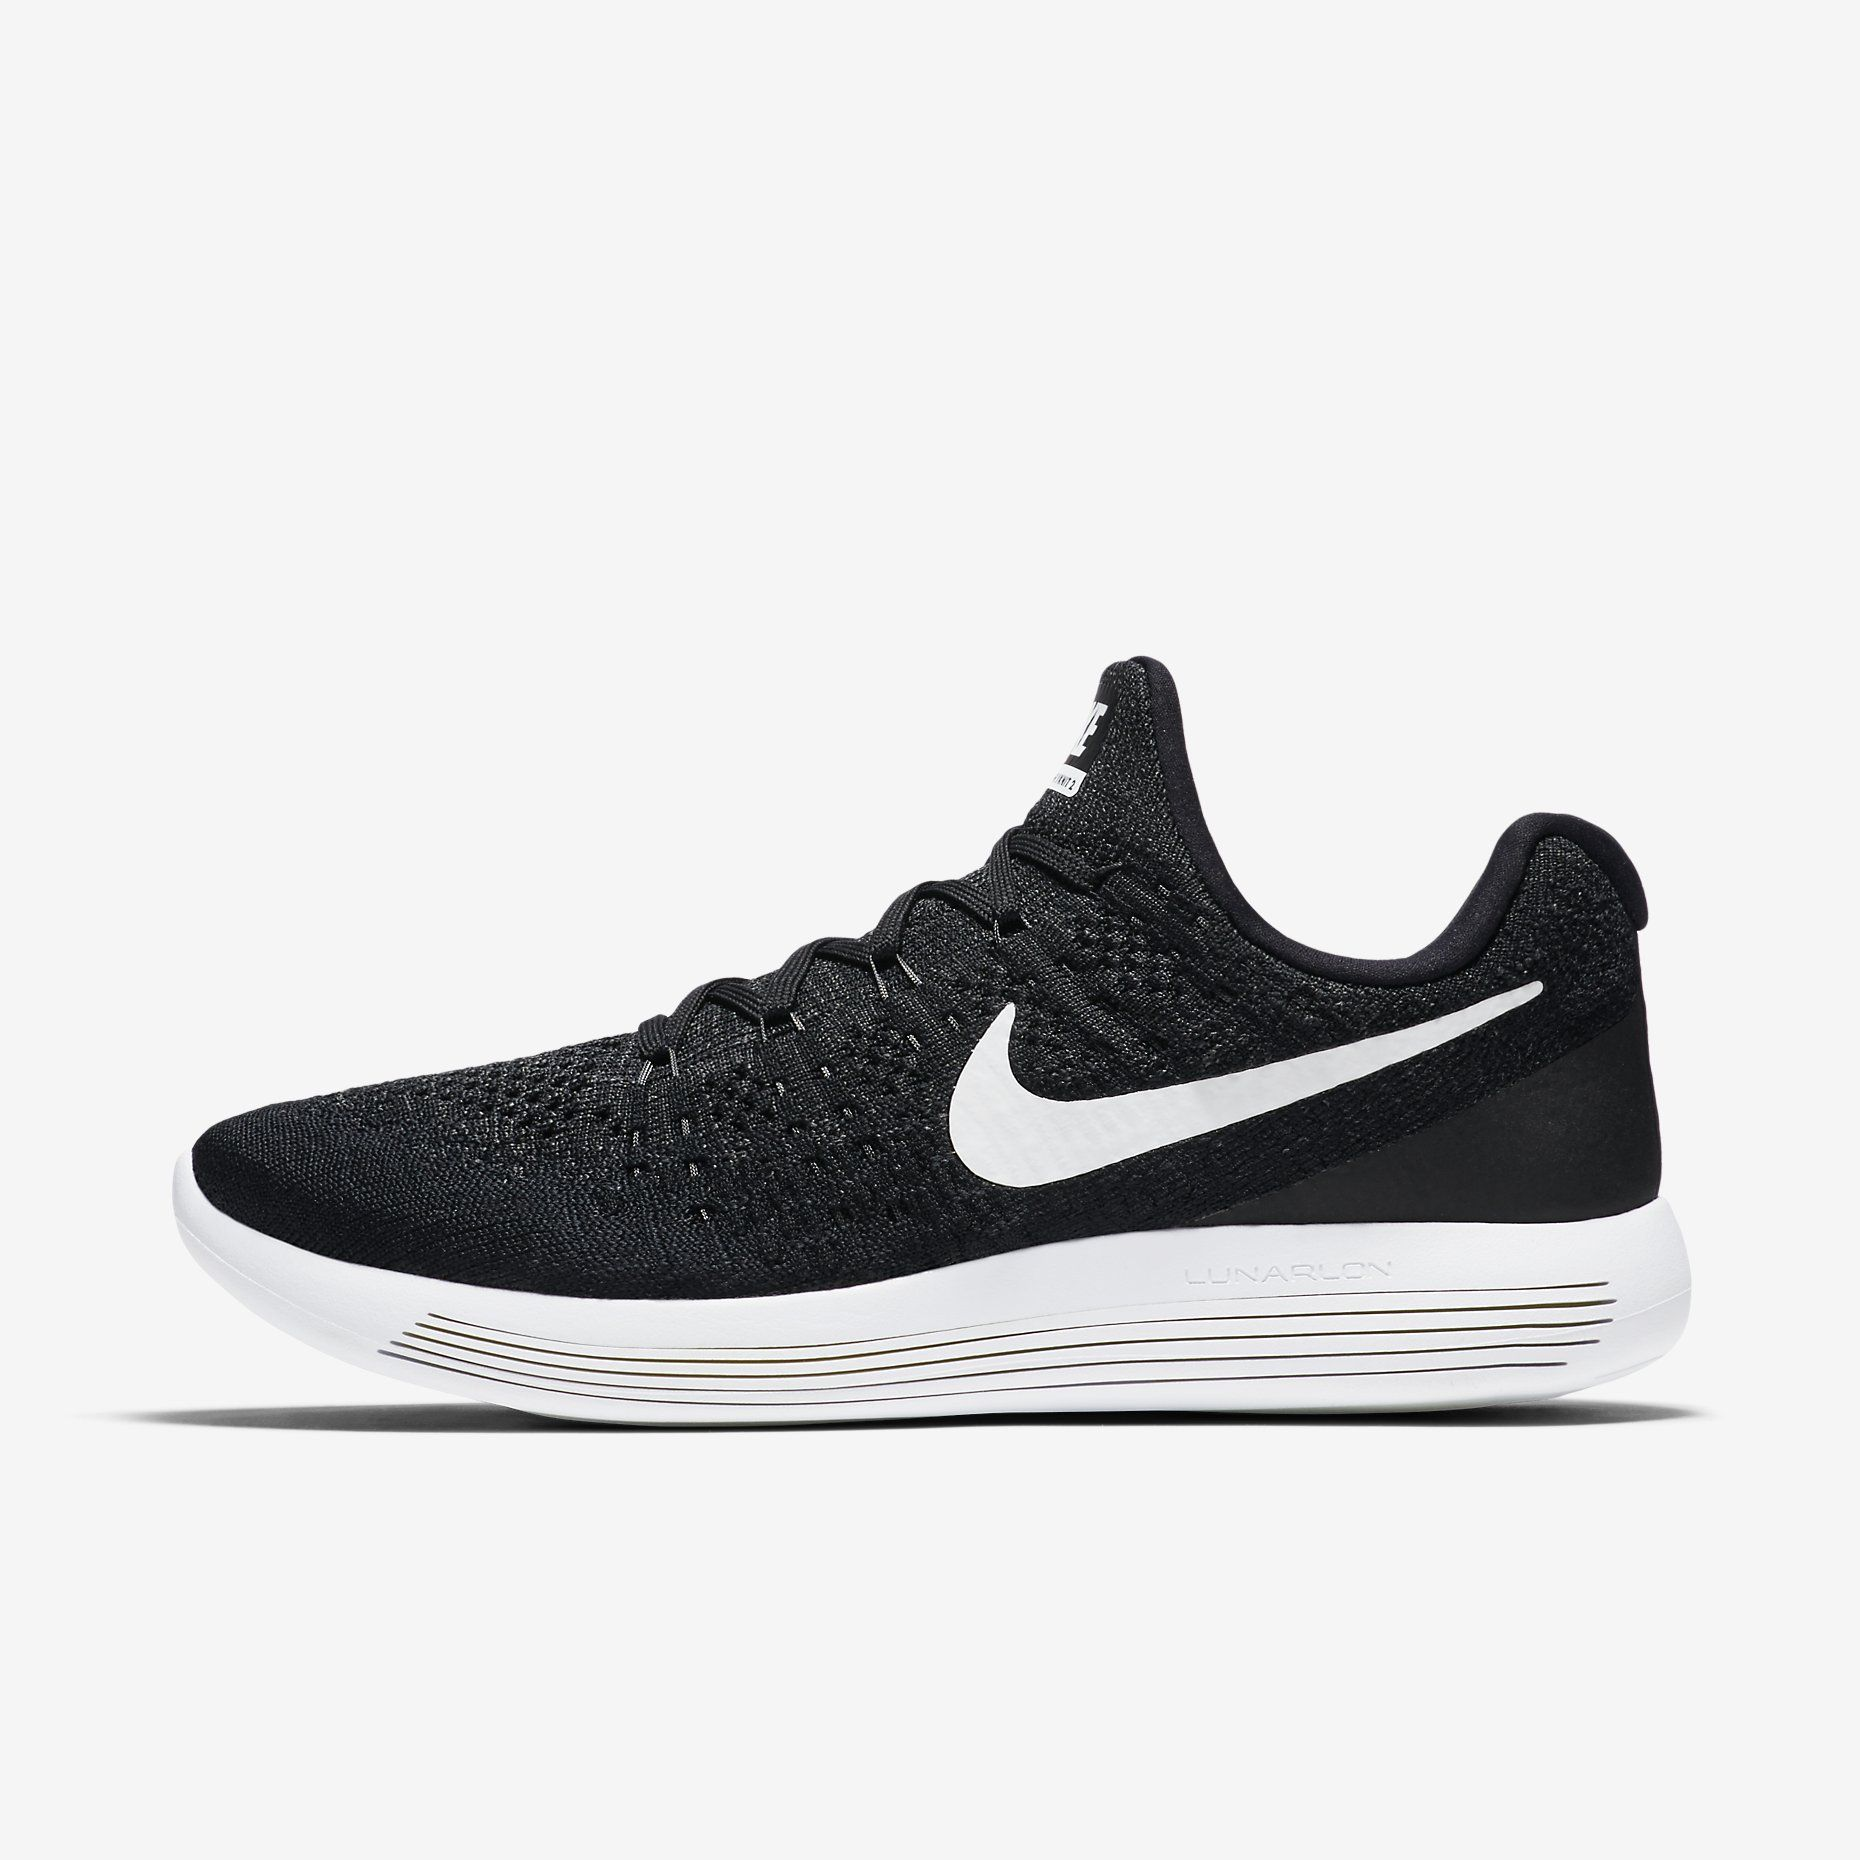 info for 7ac42 33492 Nike LunarEpic Low Flyknit 2 Laser sipes cut into the outsole create a  smooth transition from heelstrike to toe-off.